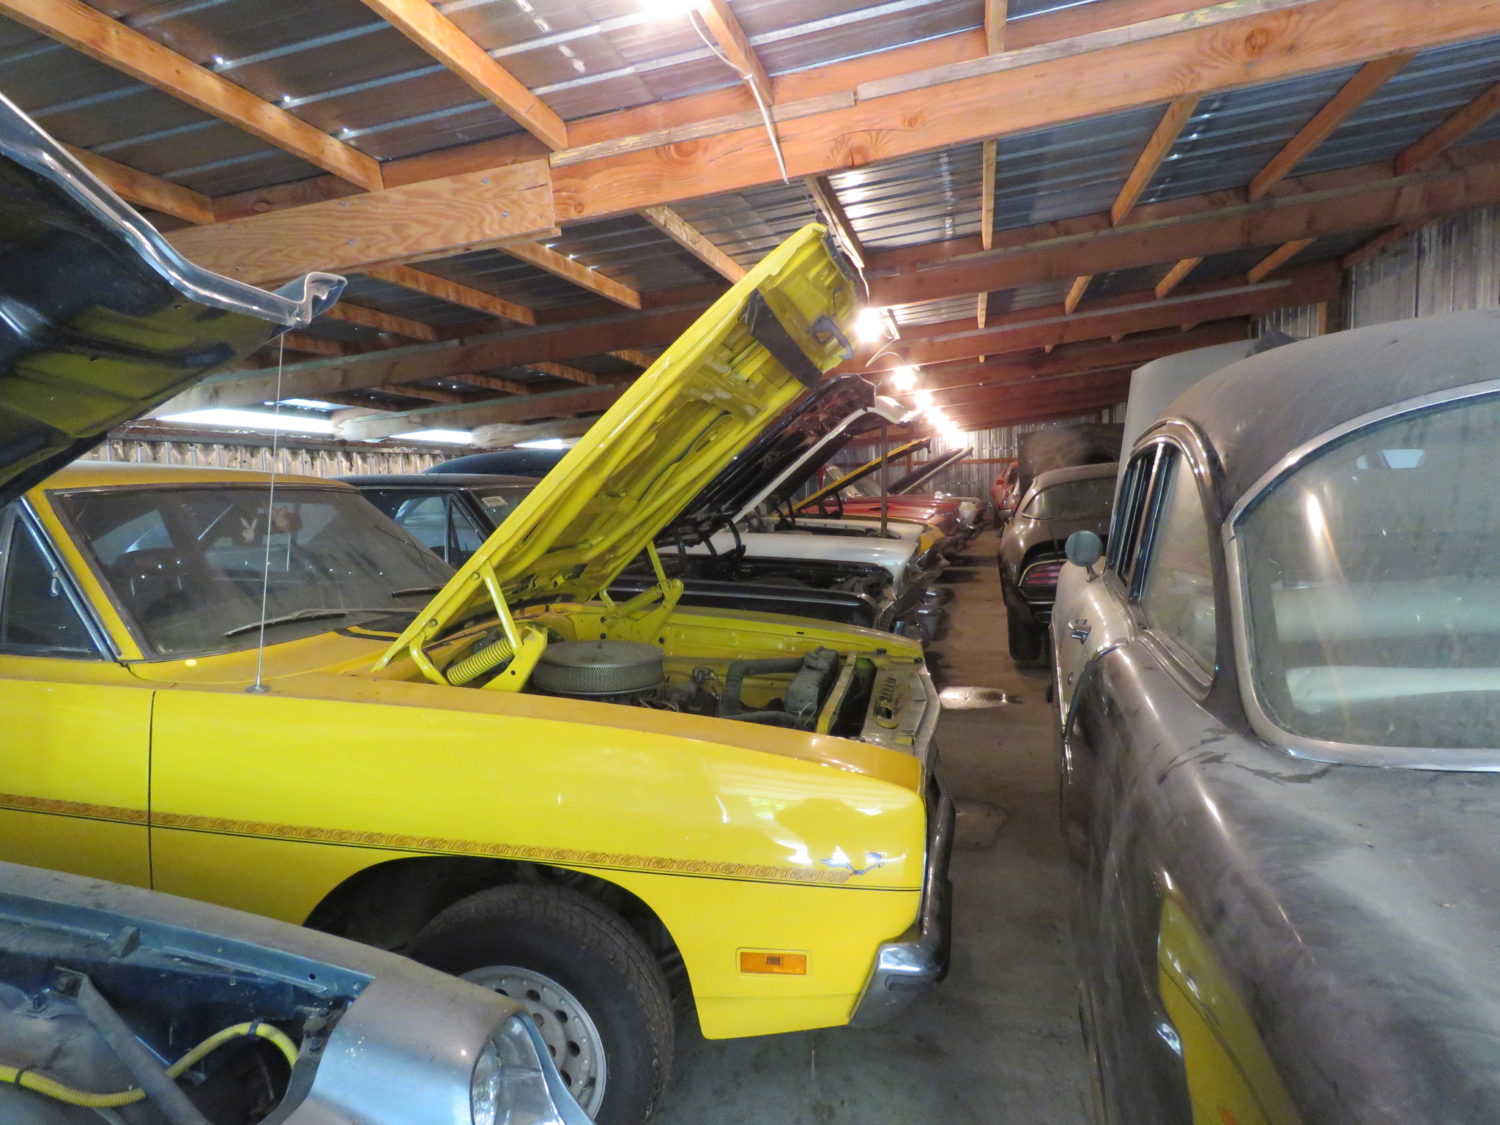 Muscle Car Heaven! The Coyote Johnson Collection Auction - image 6